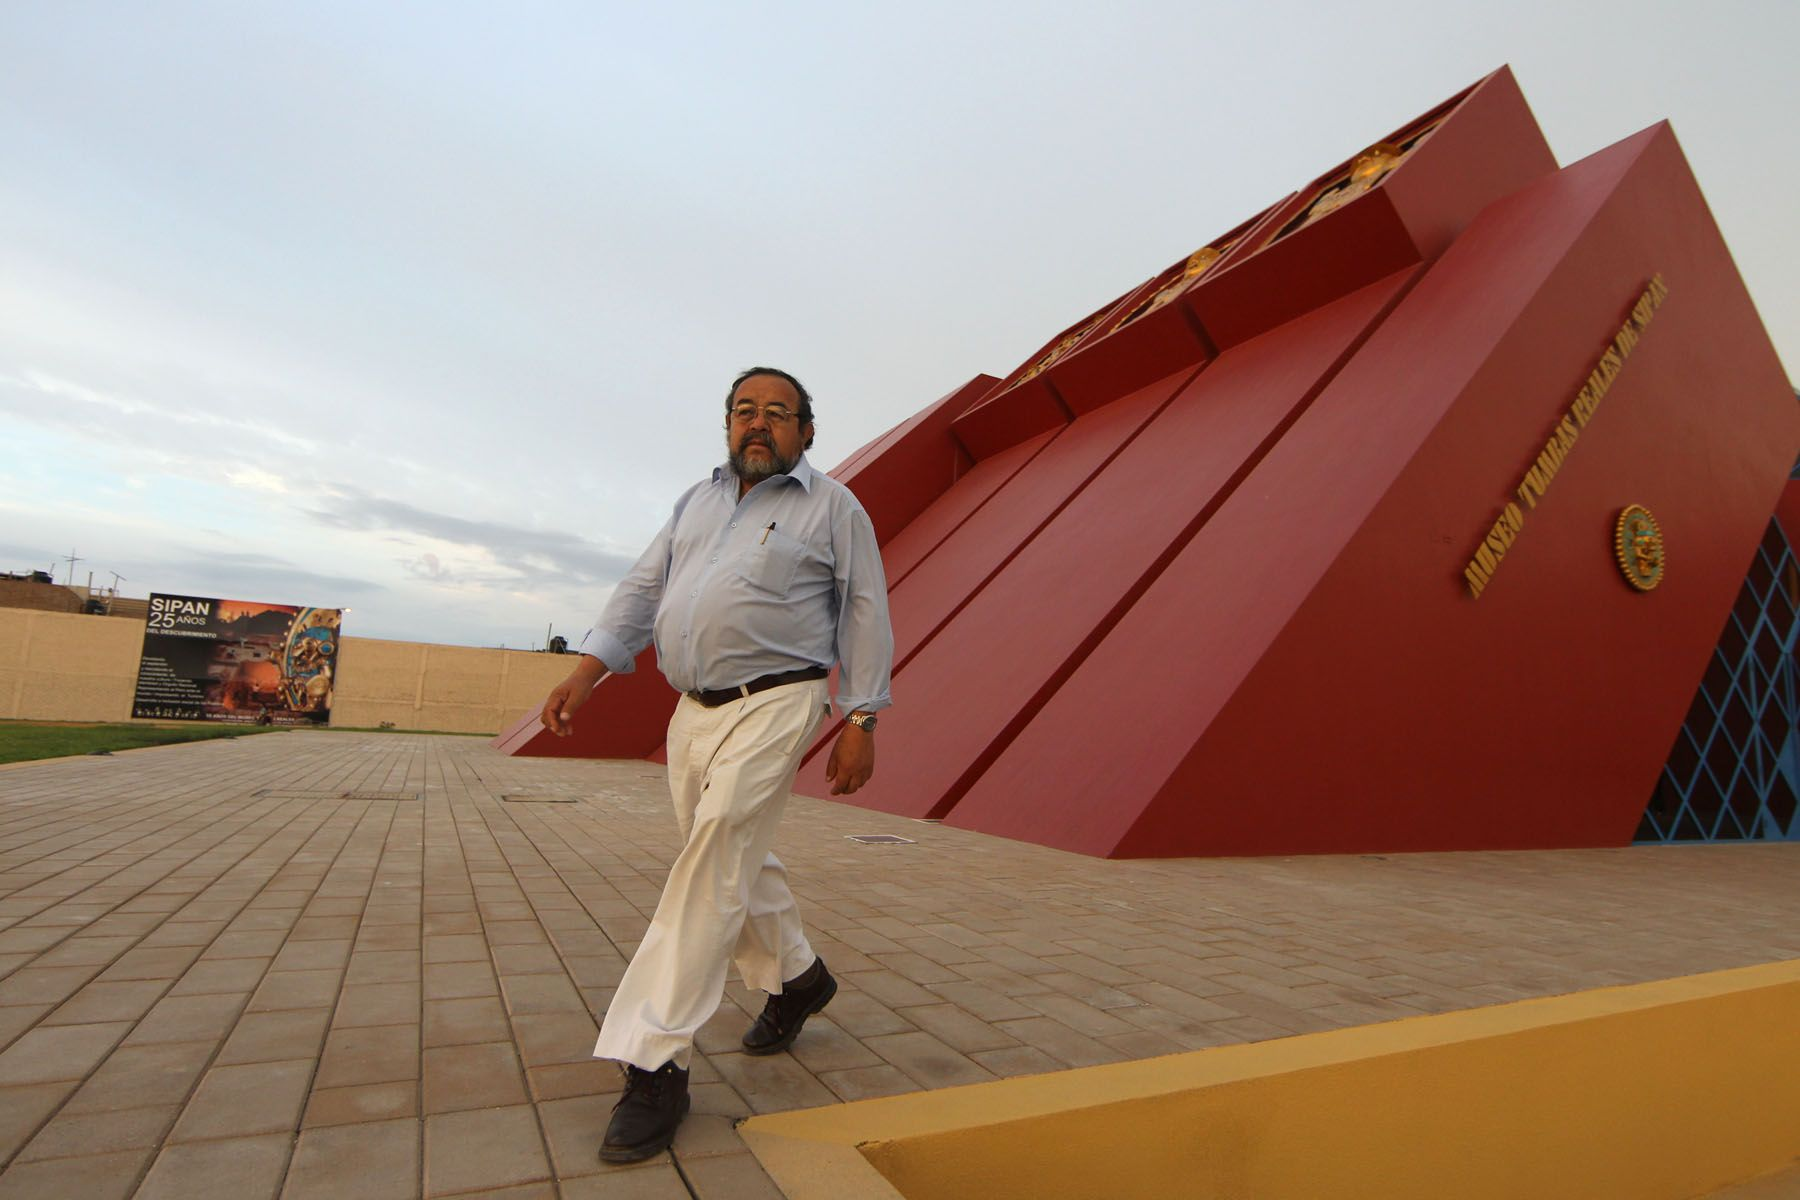 Walter Alva walks outside the Royal Tombs of Sipan Museum in Lambayeque, Peru. Photo: ANDINA/Carlos Lezama.